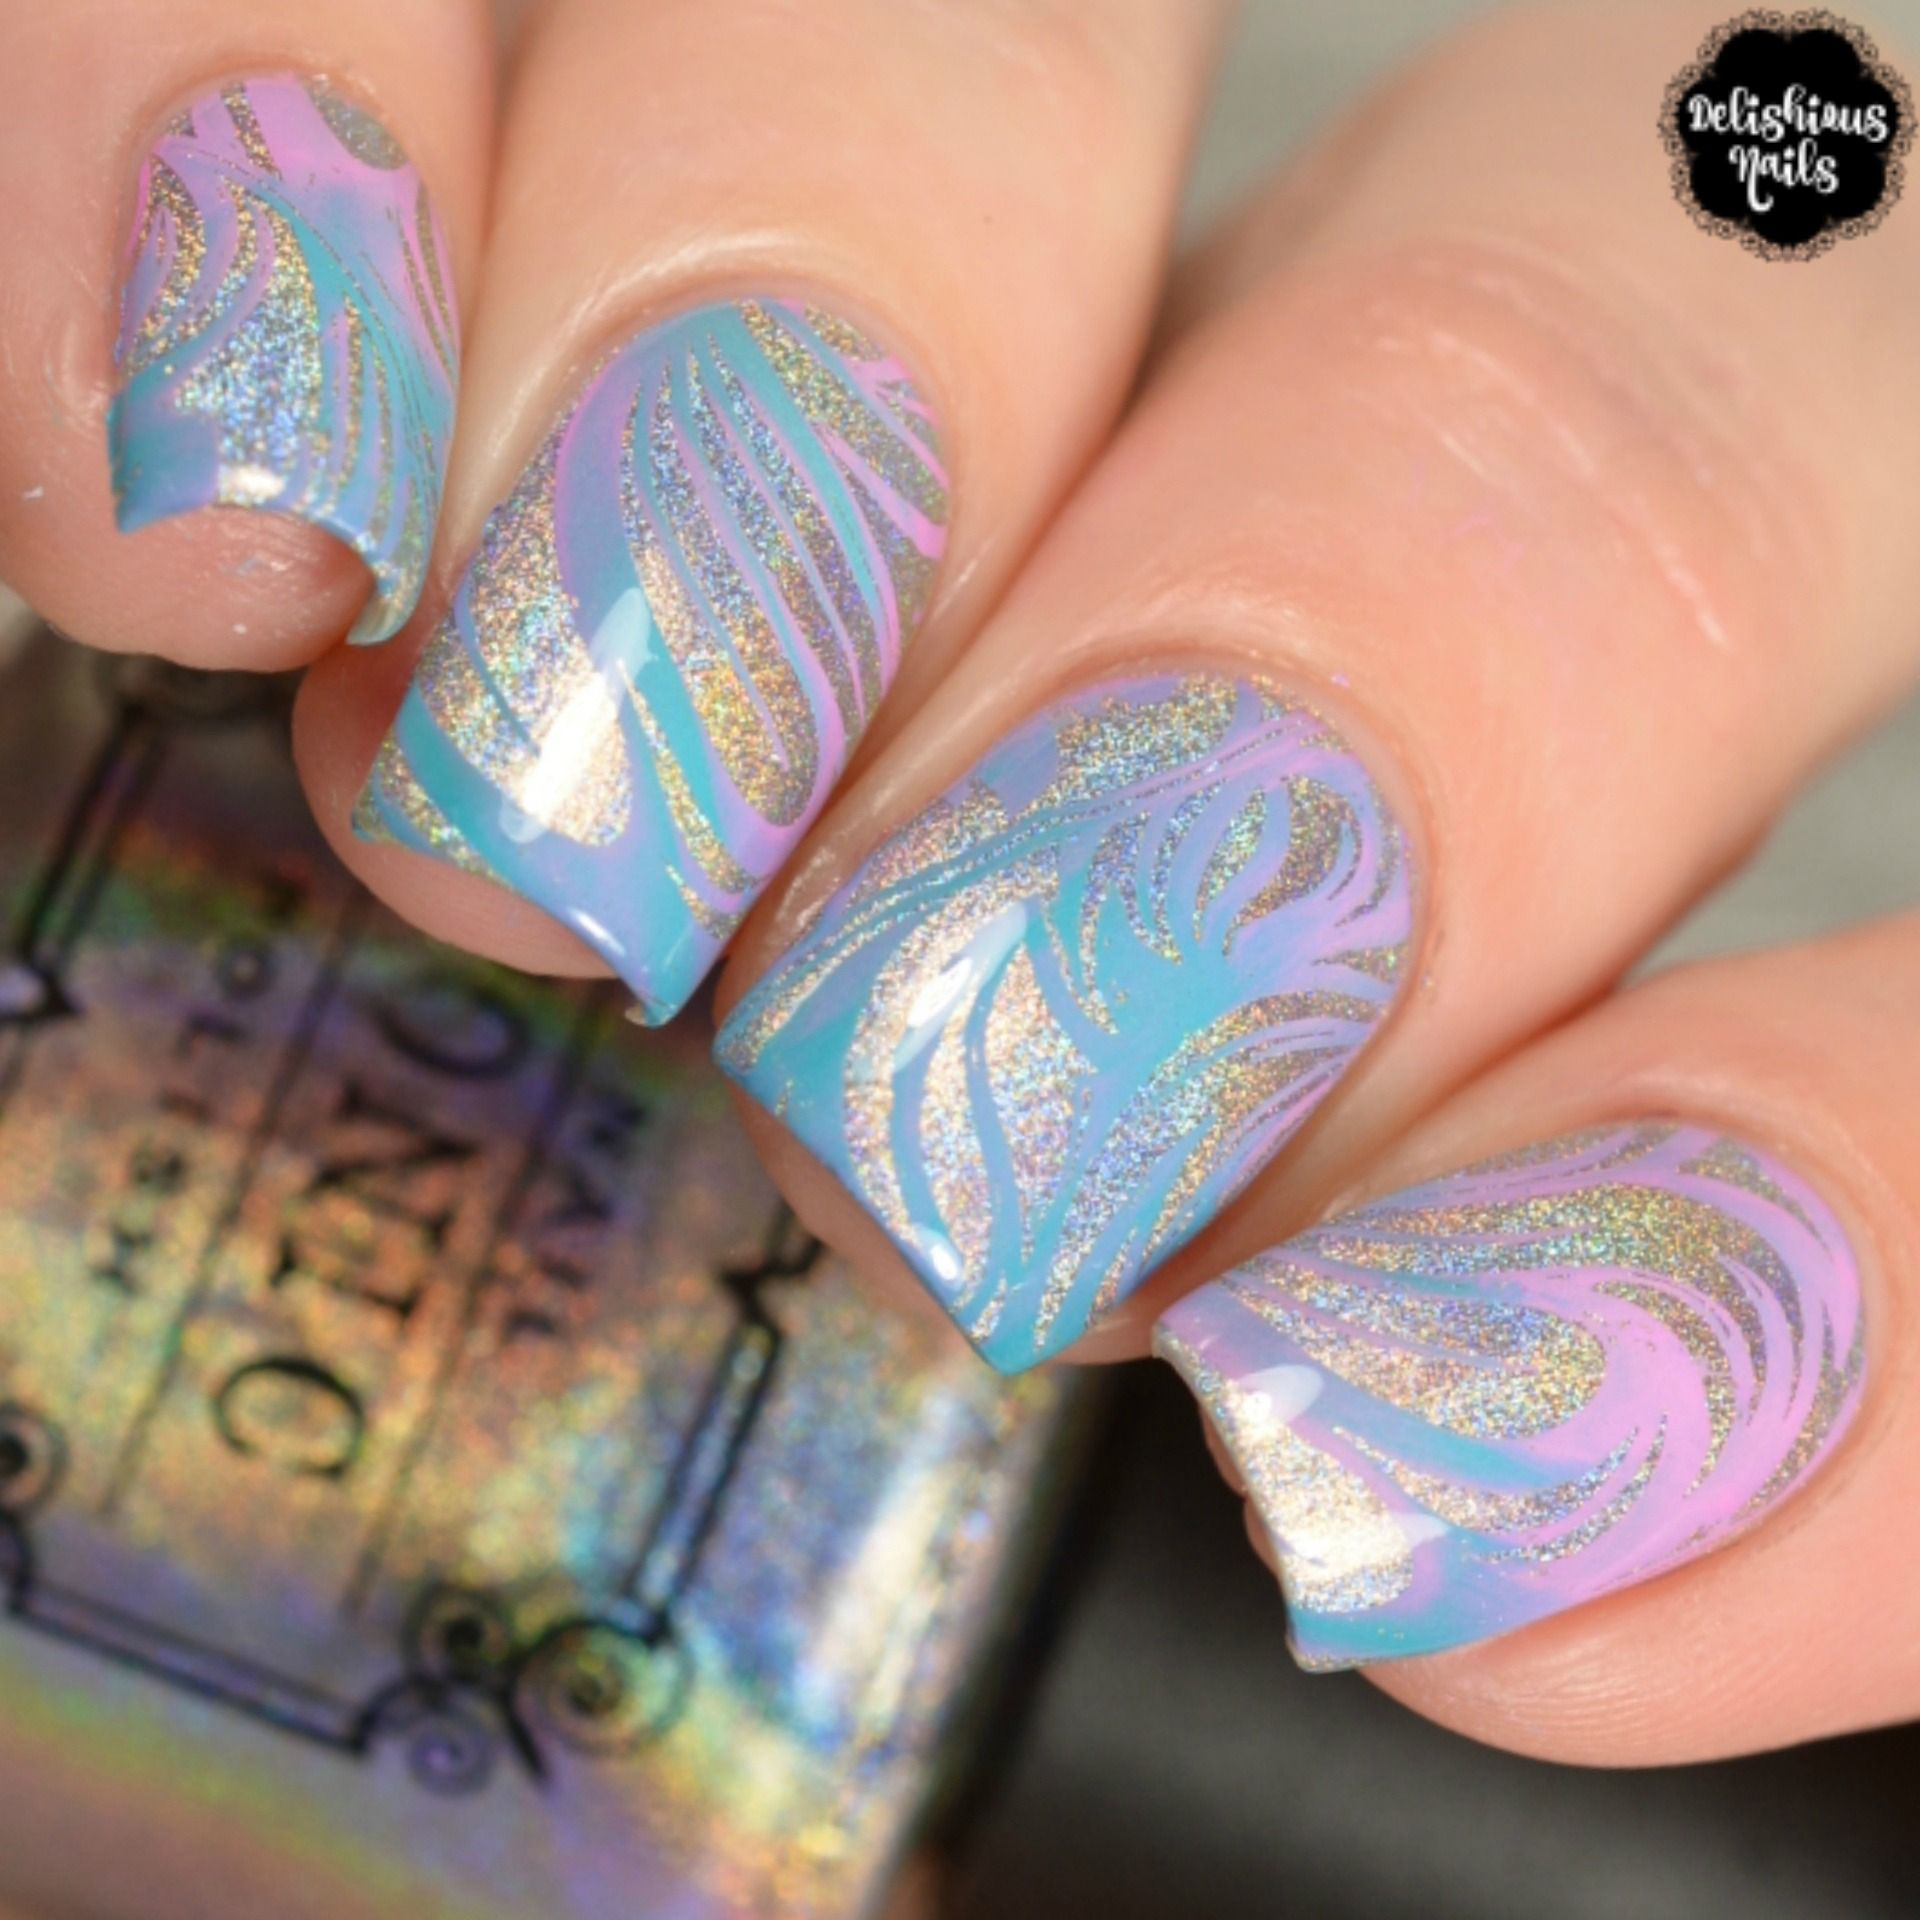 Holographic nails with whimsical nail stamping art design